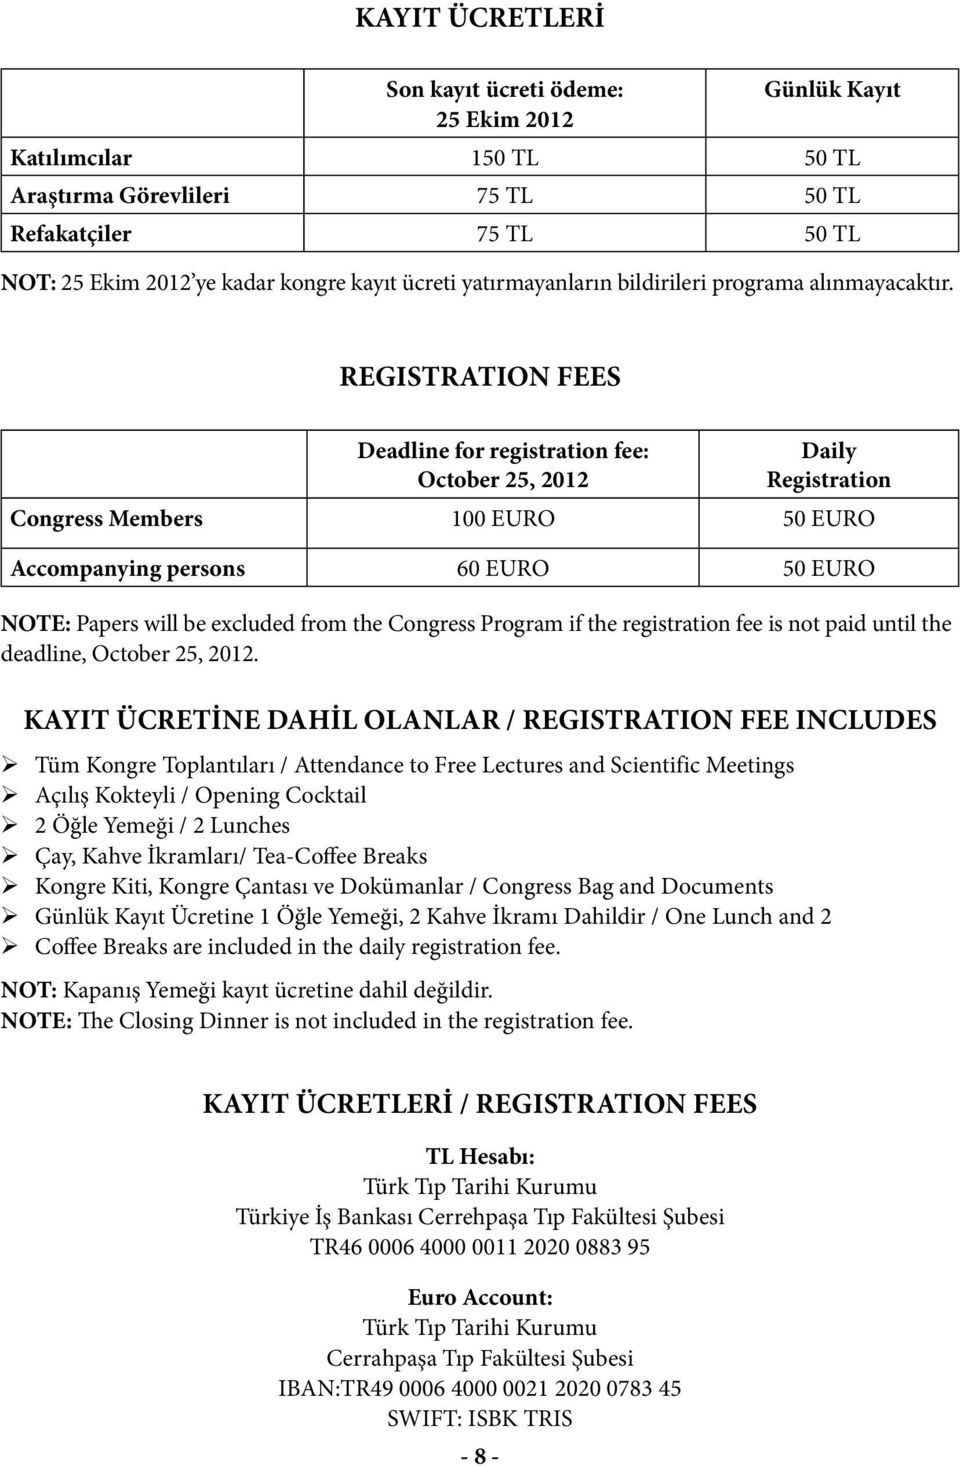 REGISTRATION FEES Deadline for registration fee: October 25, 2012 Daily Registration Congress Members 100 EURO 50 EURO Accompanying persons 60 EURO 50 EURO NOTE: Papers will be excluded from the